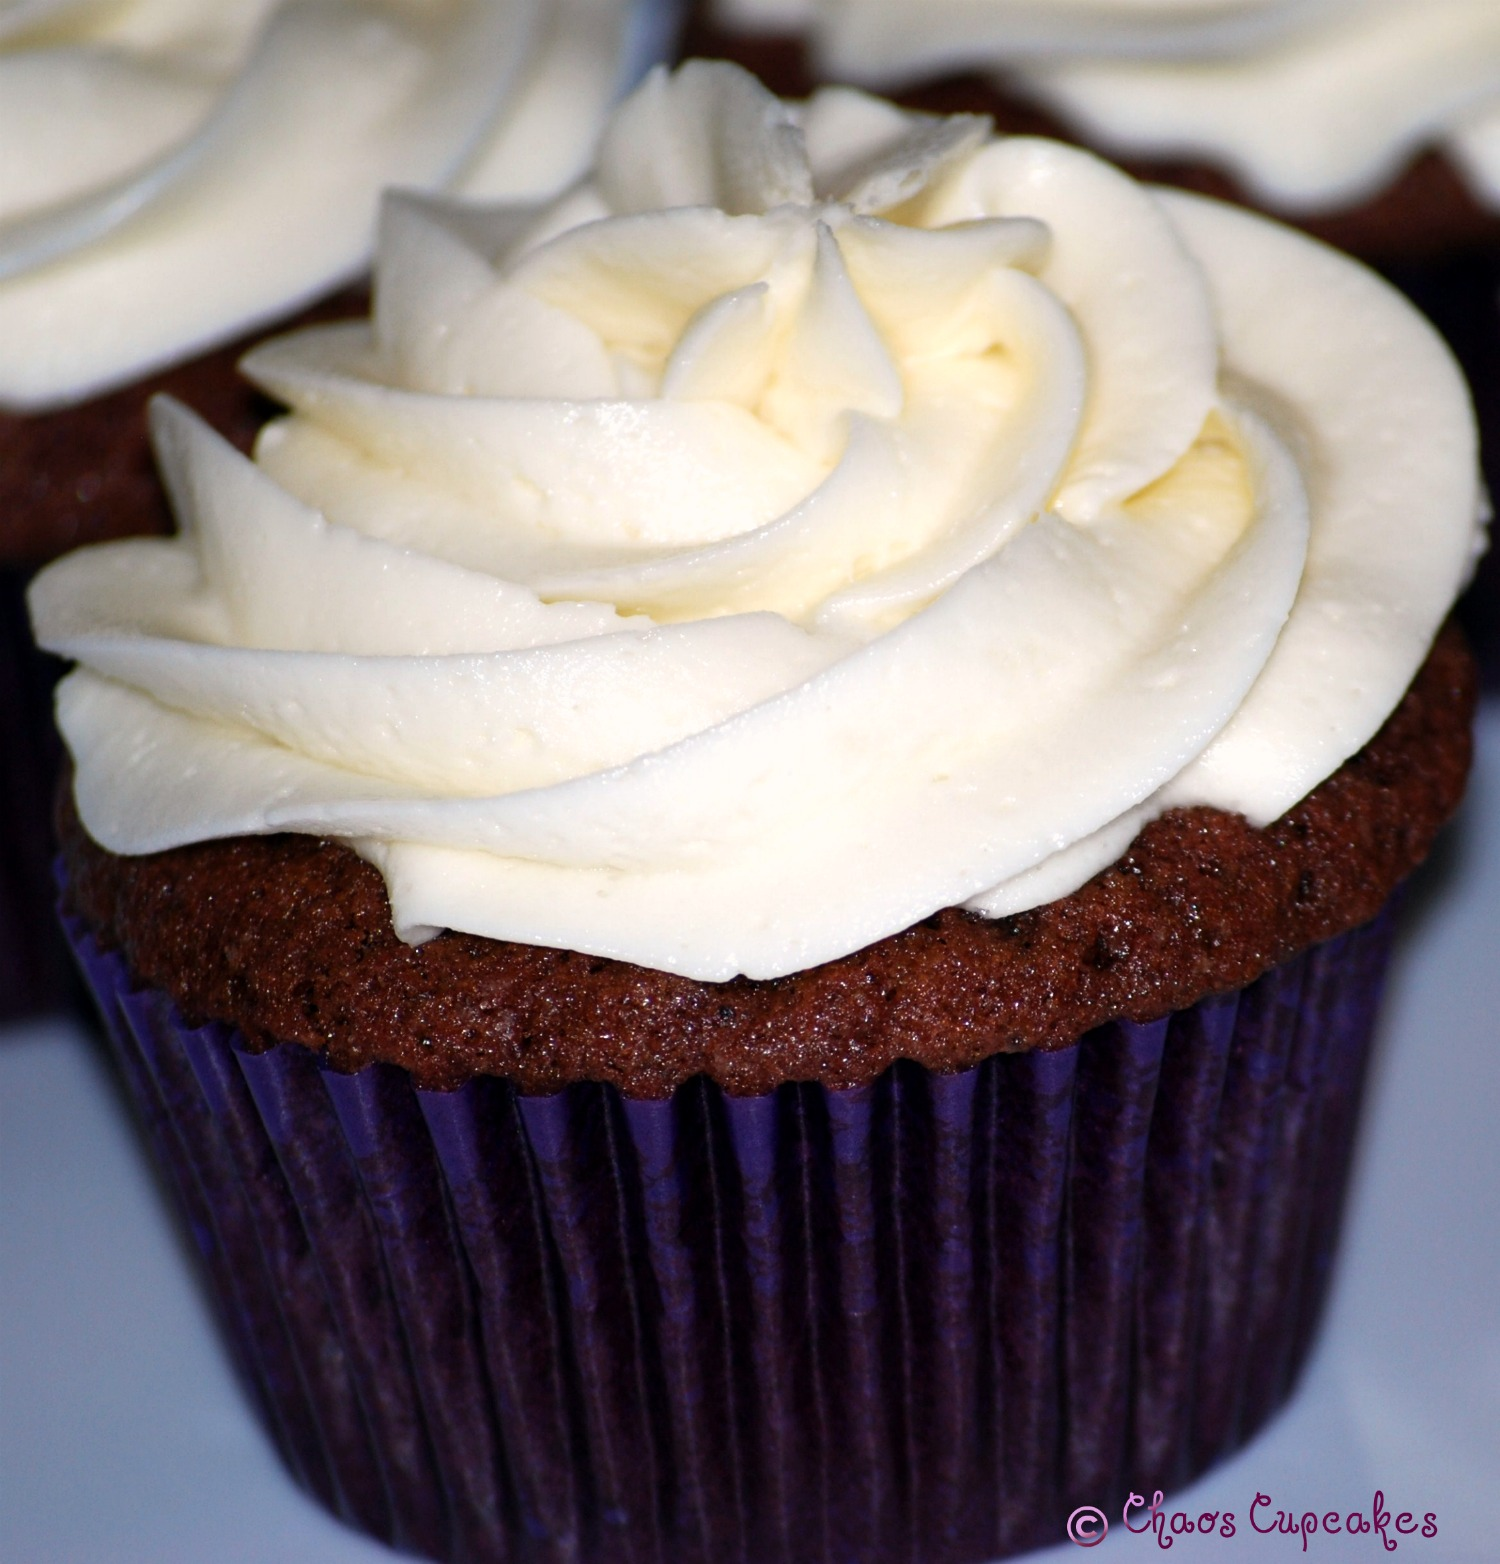 Chaos Cupcakes: Whipped Cream Filled Chocolate Cupcake